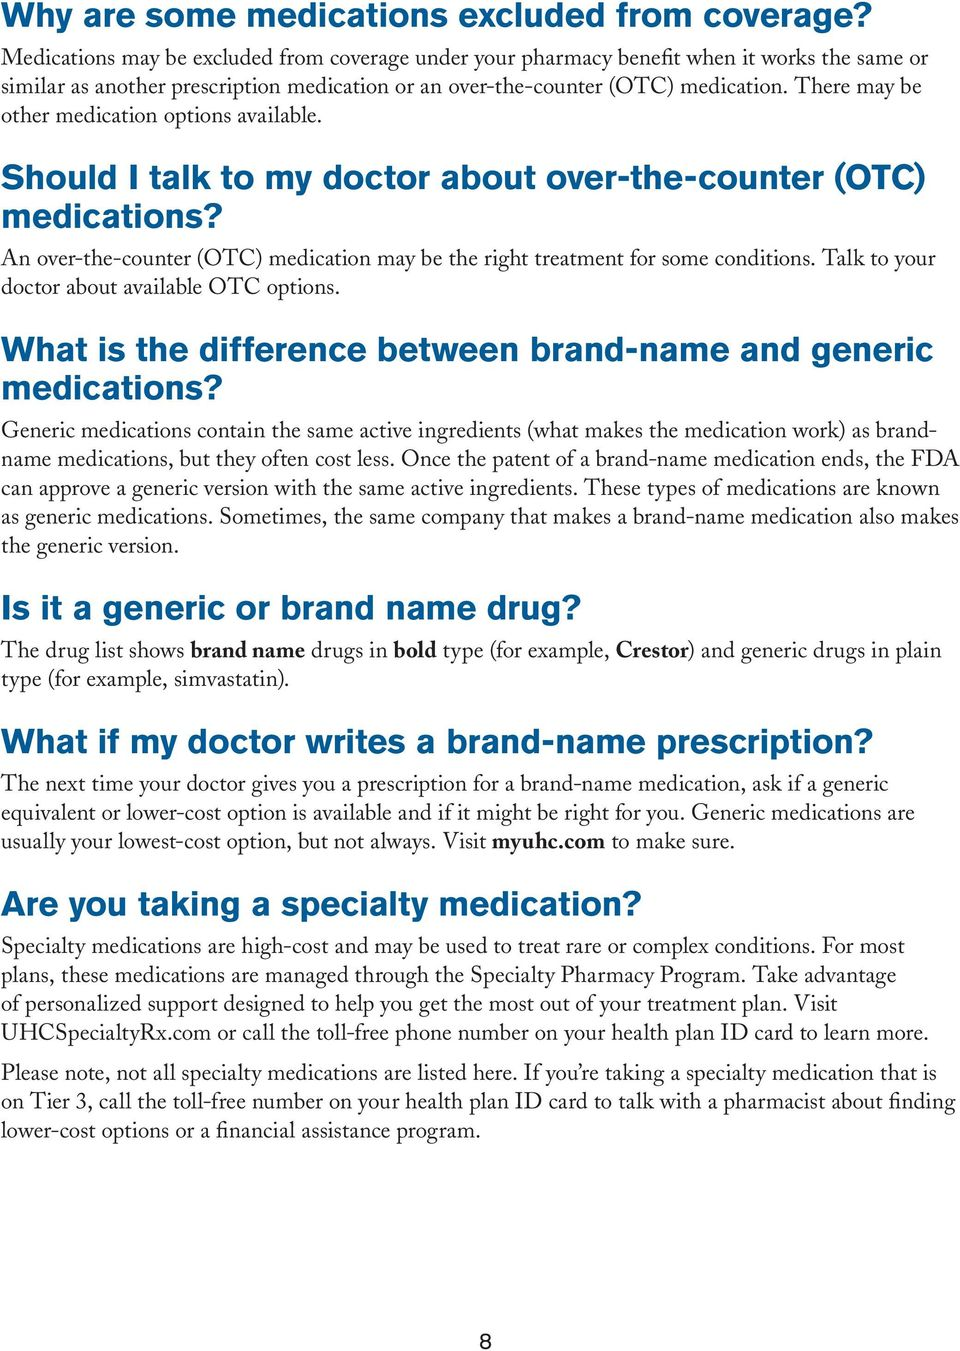 There may be other medication options available. Should I talk to my doctor about over-the-counter (OTC) medications?